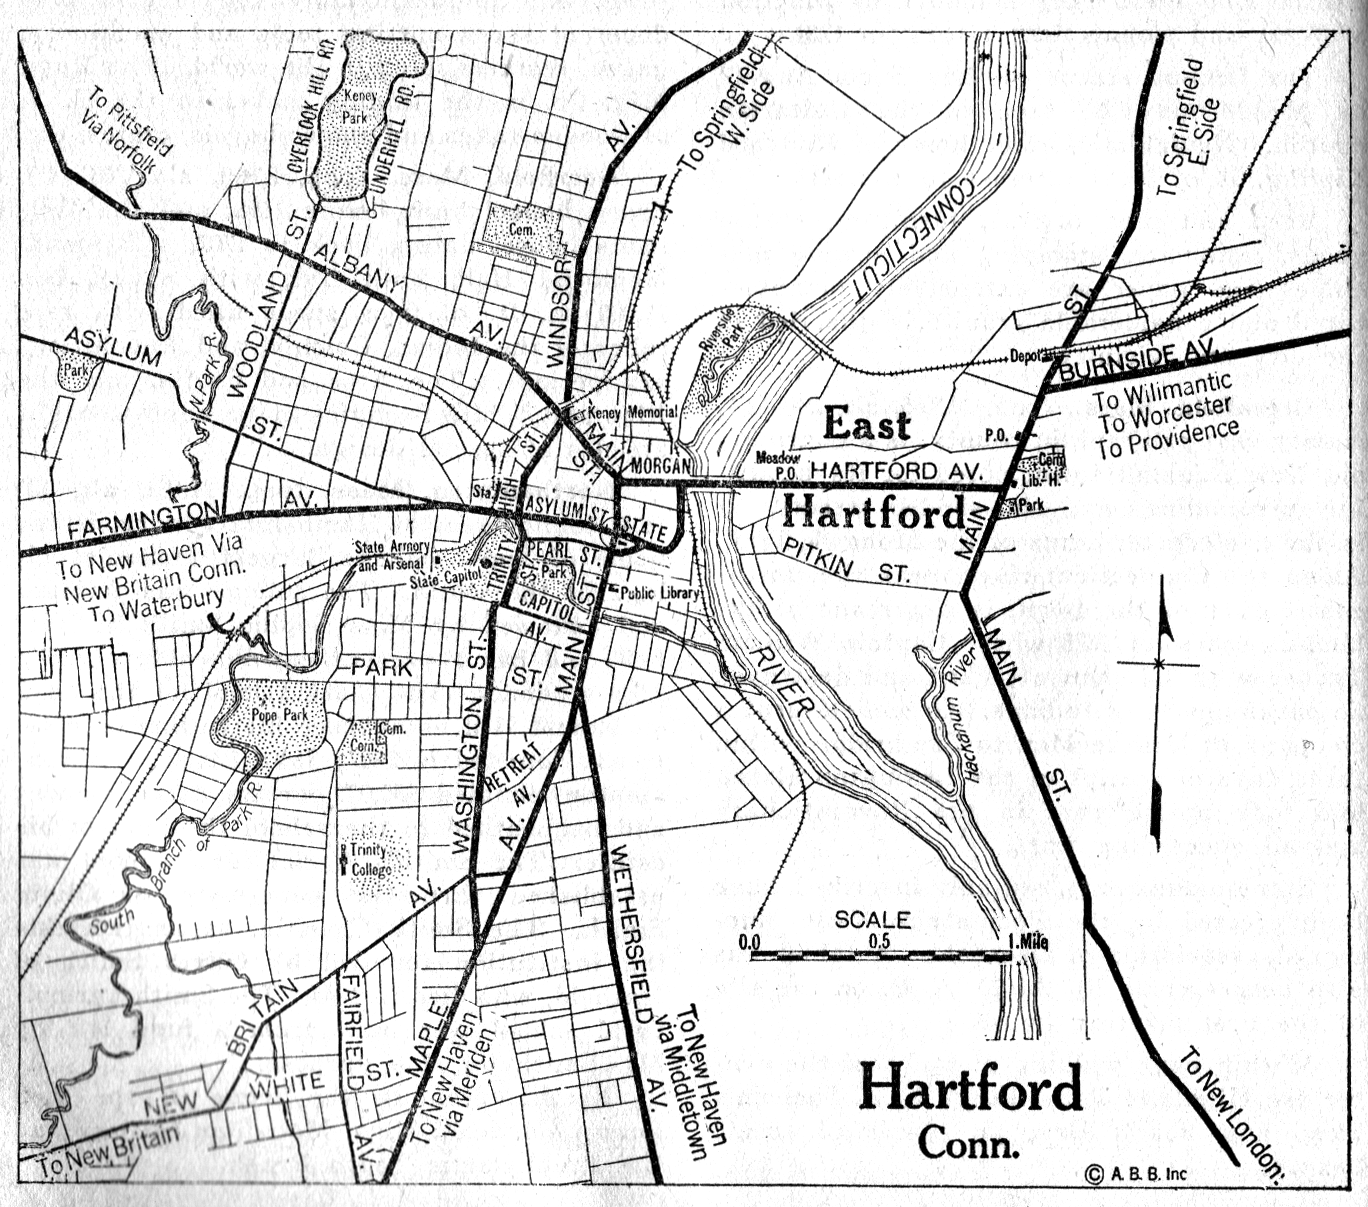 Connecticut City Maps At AmericanRoadscom - Connecticut city map